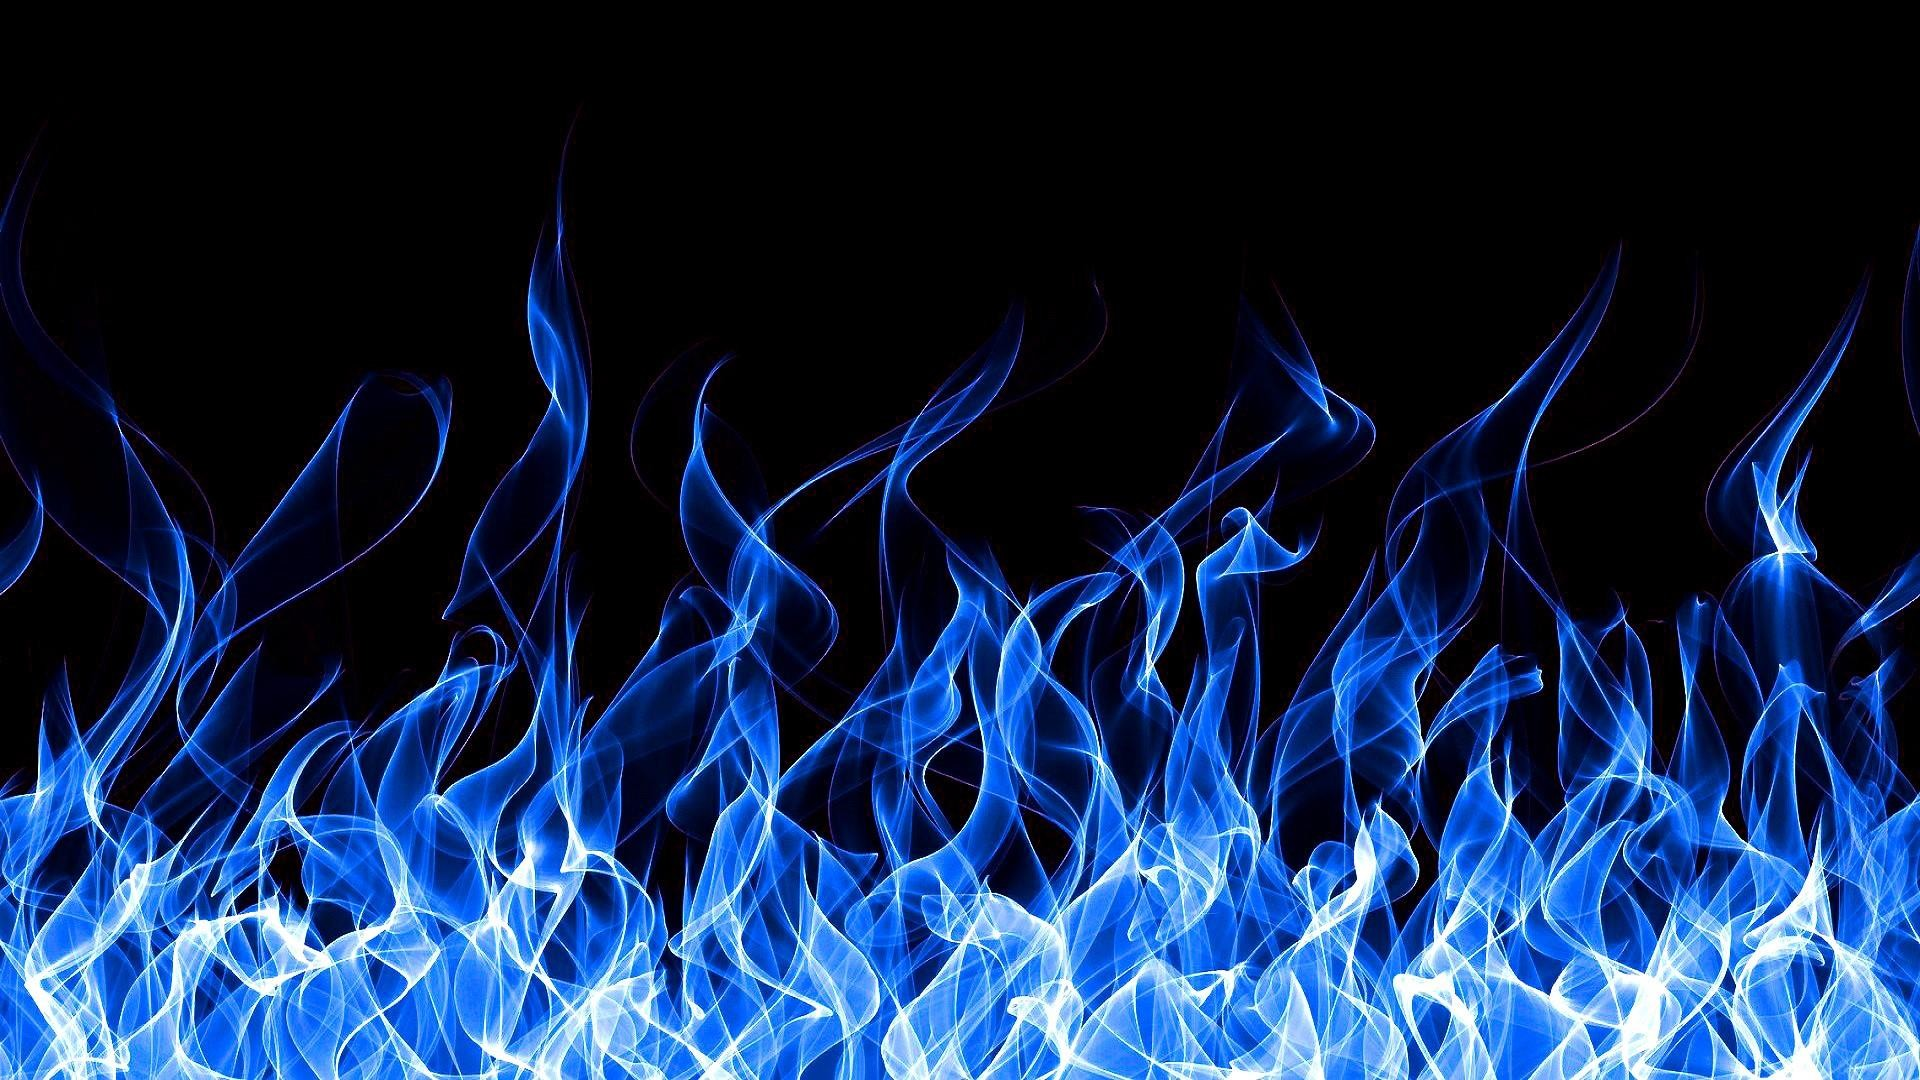 Res: 1920x1080, Blue Fire Wallpaper | Wallpaper Studio 10 | Tens of thousands HD and  UltraHD wallpapers for Android, Windows and Xbox